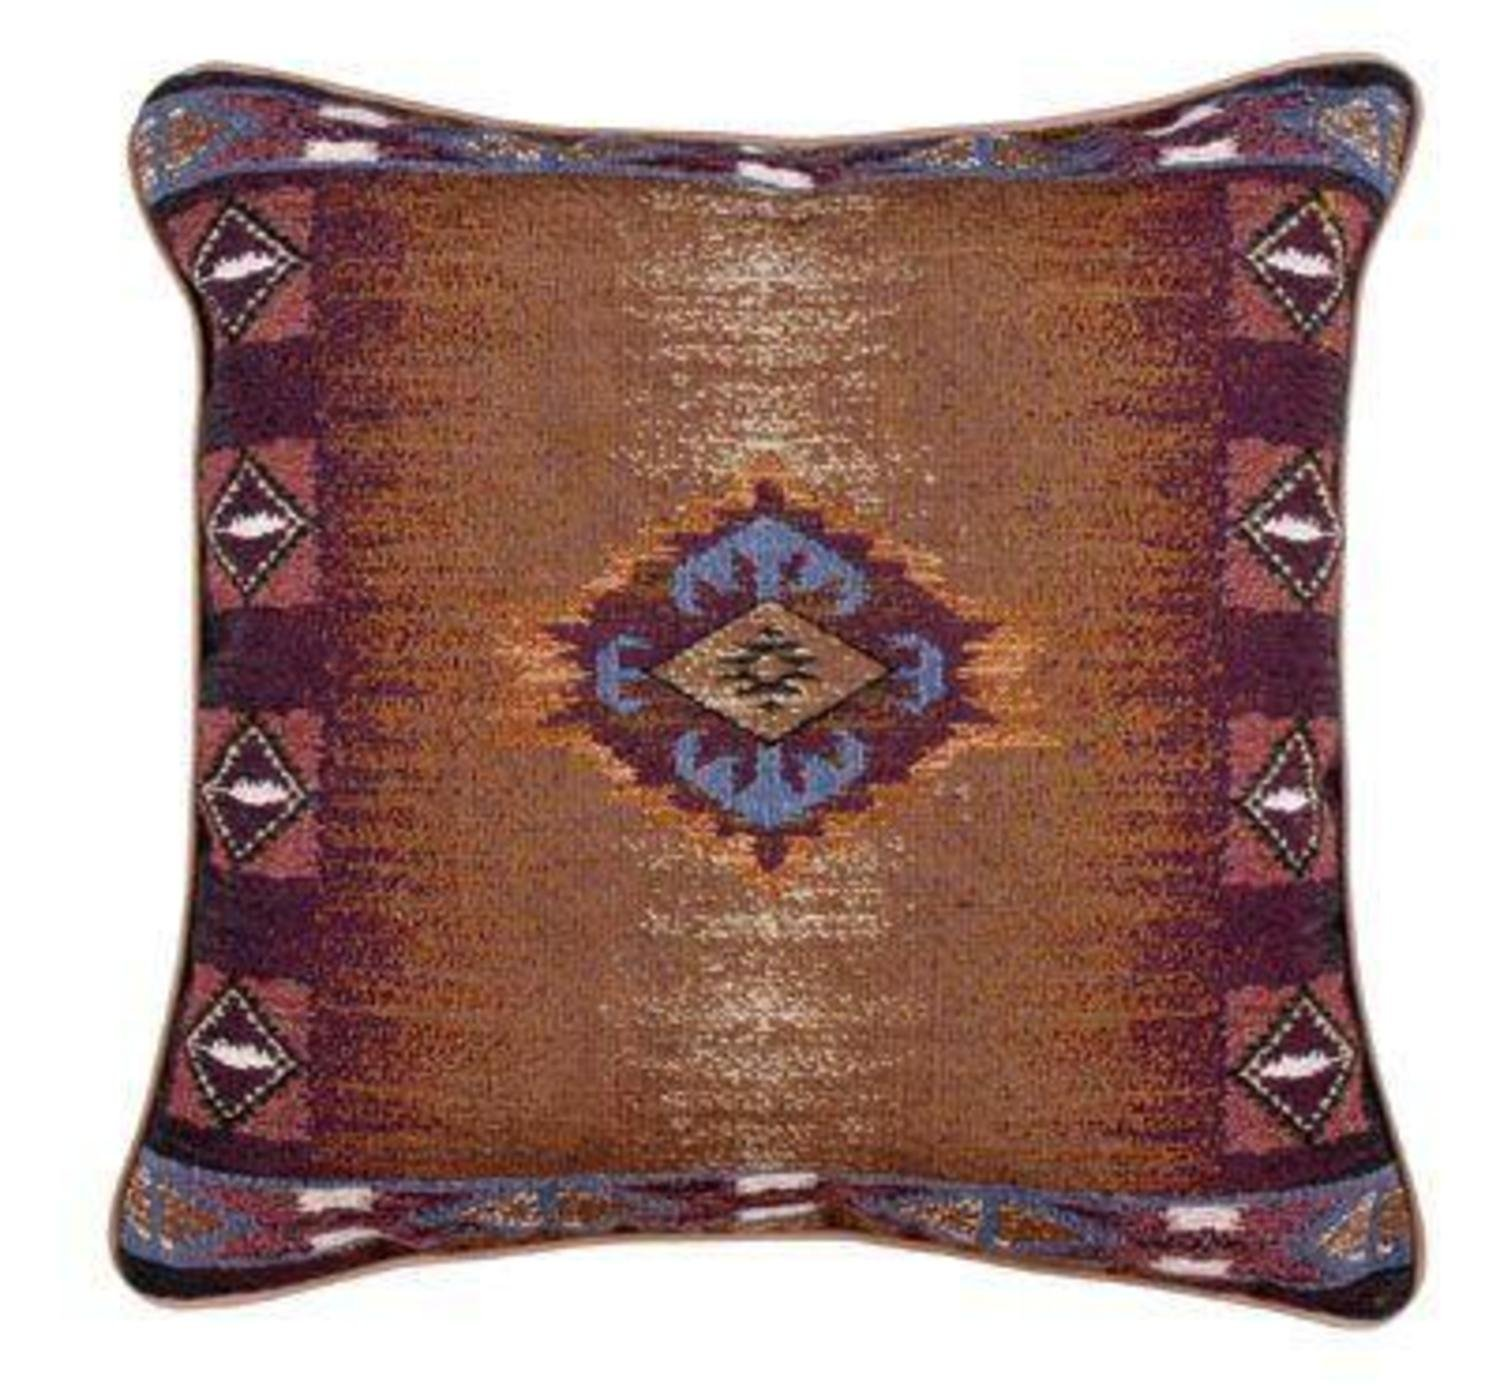 Southwest decorative accent throw pillow 18 x 18 decorative southwestern style native american style by simply home ship from us walmart com